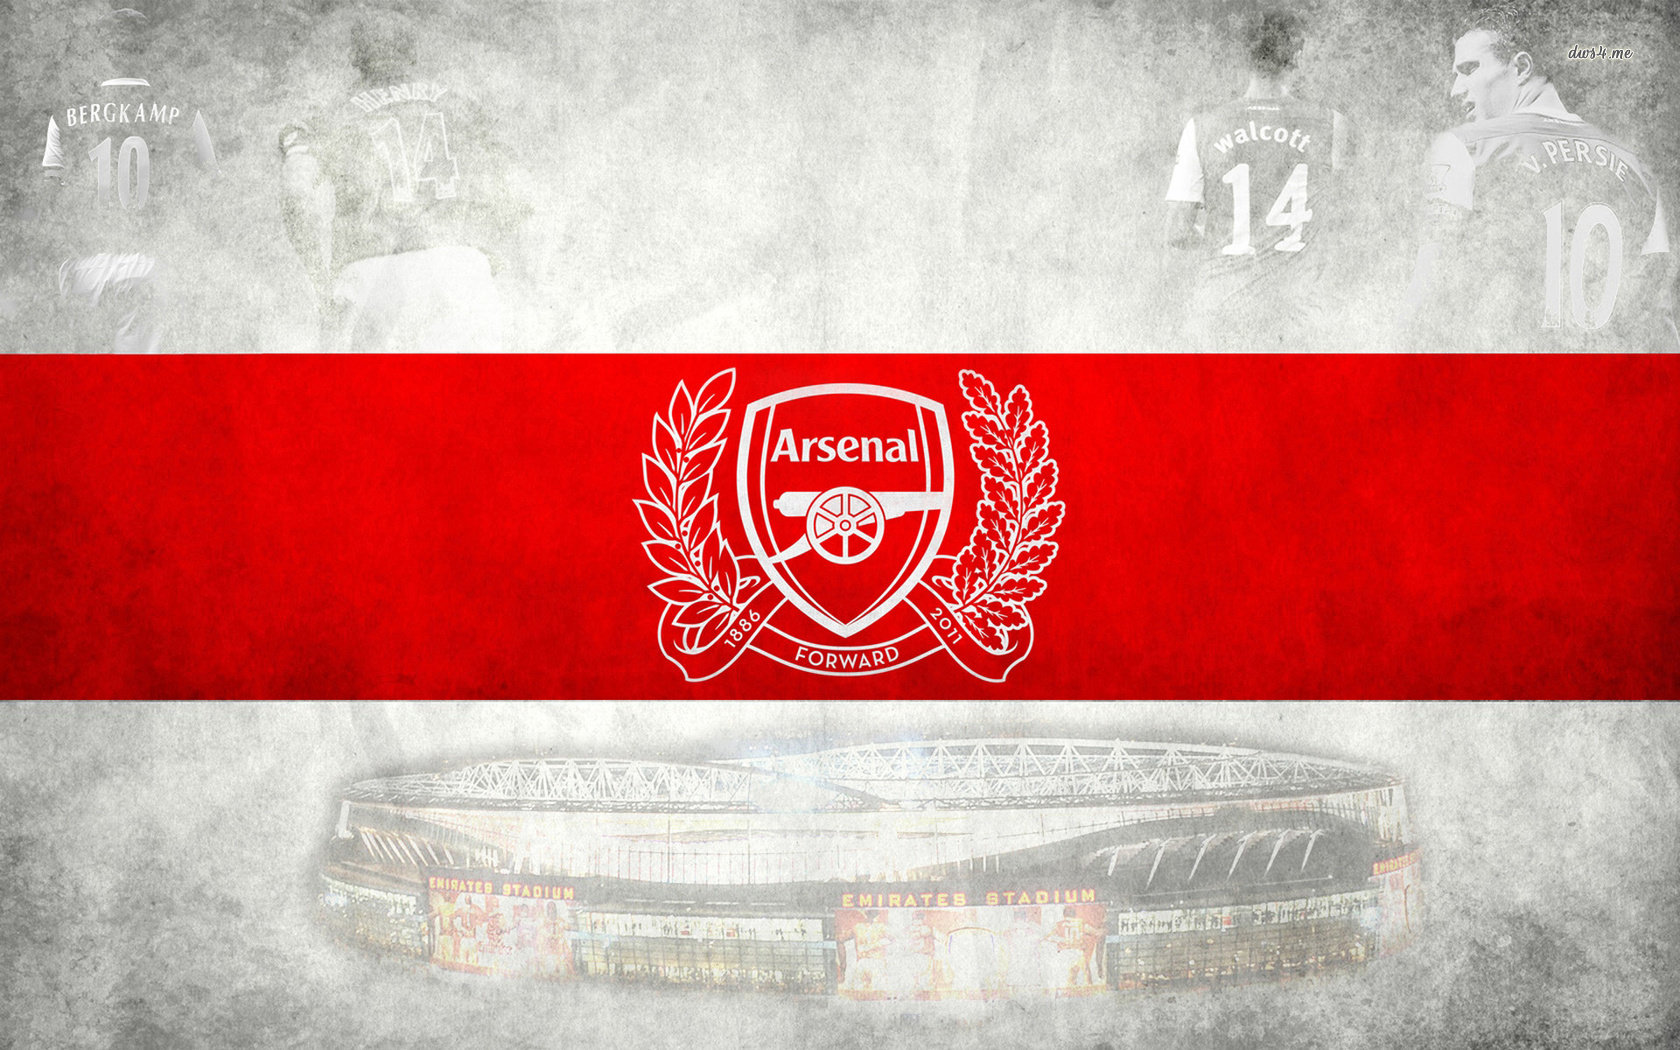 Free Arsenal F.C. high quality wallpaper ID:444784 for hd 1680x1050 desktop